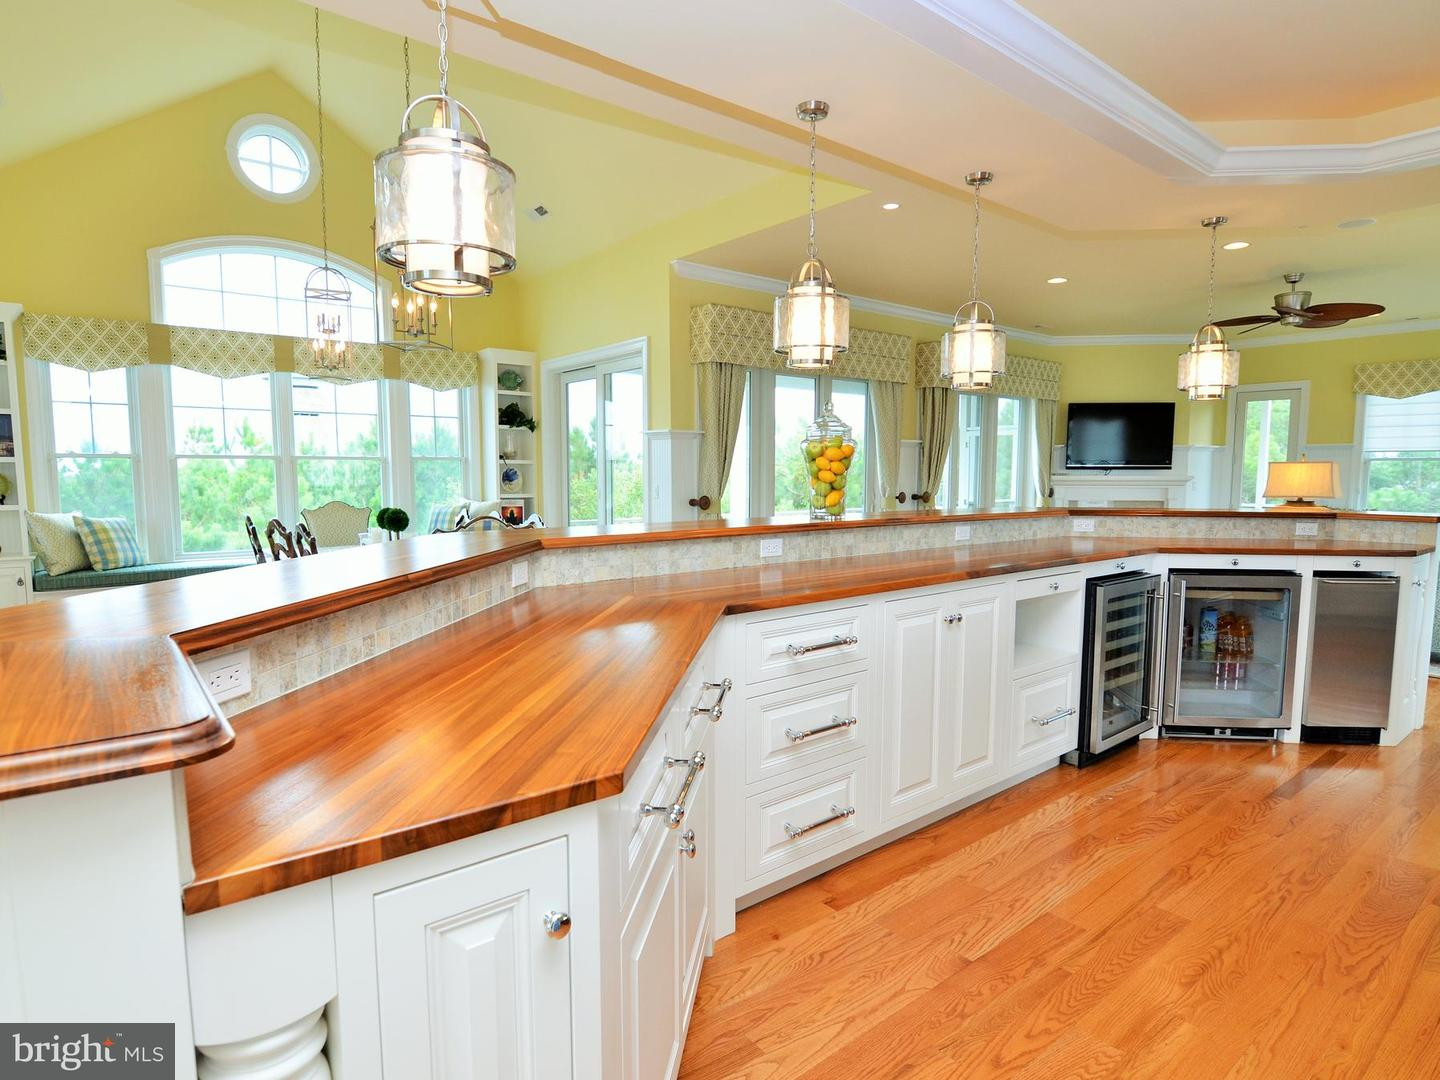 1002293530-300500807888-2018-09-25-15-08-25 31 Hall Ave | Rehoboth Beach, De Real Estate For Sale | MLS# 1002293530  - Suzanne Macnab